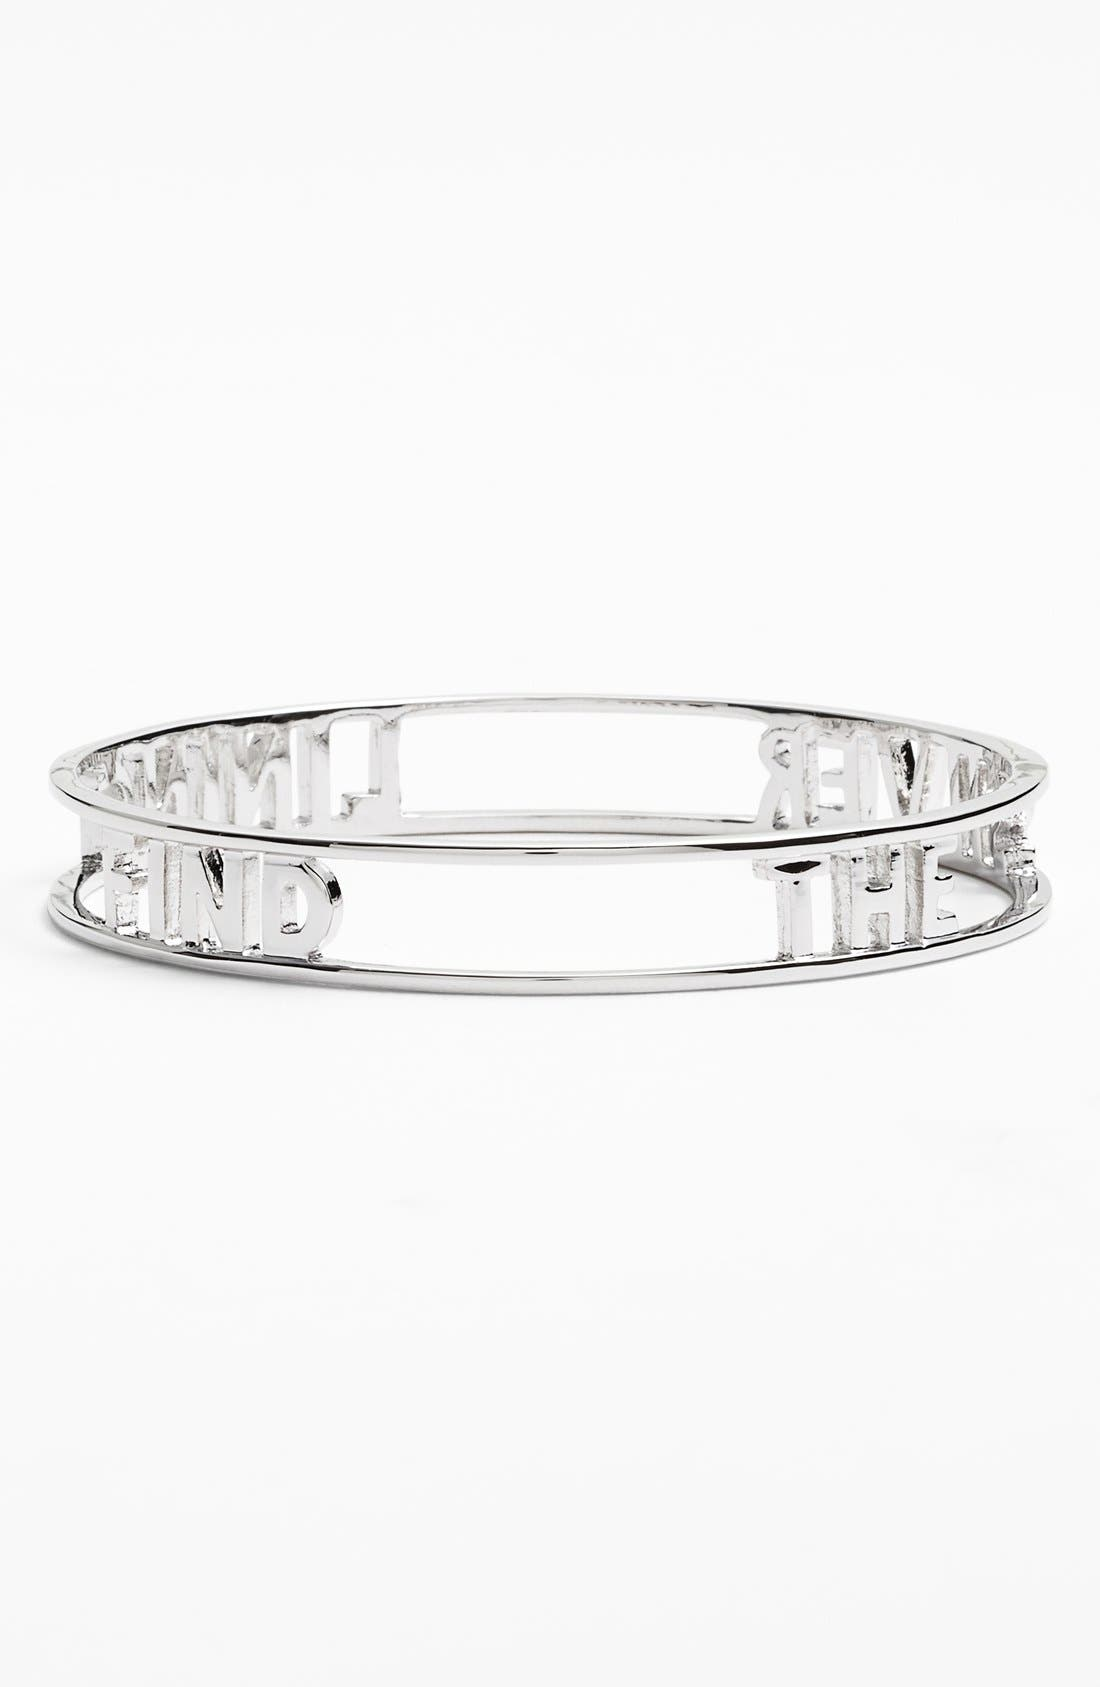 Main Image - kate spade new york 'words of wisdom - find the silver lining' bangle